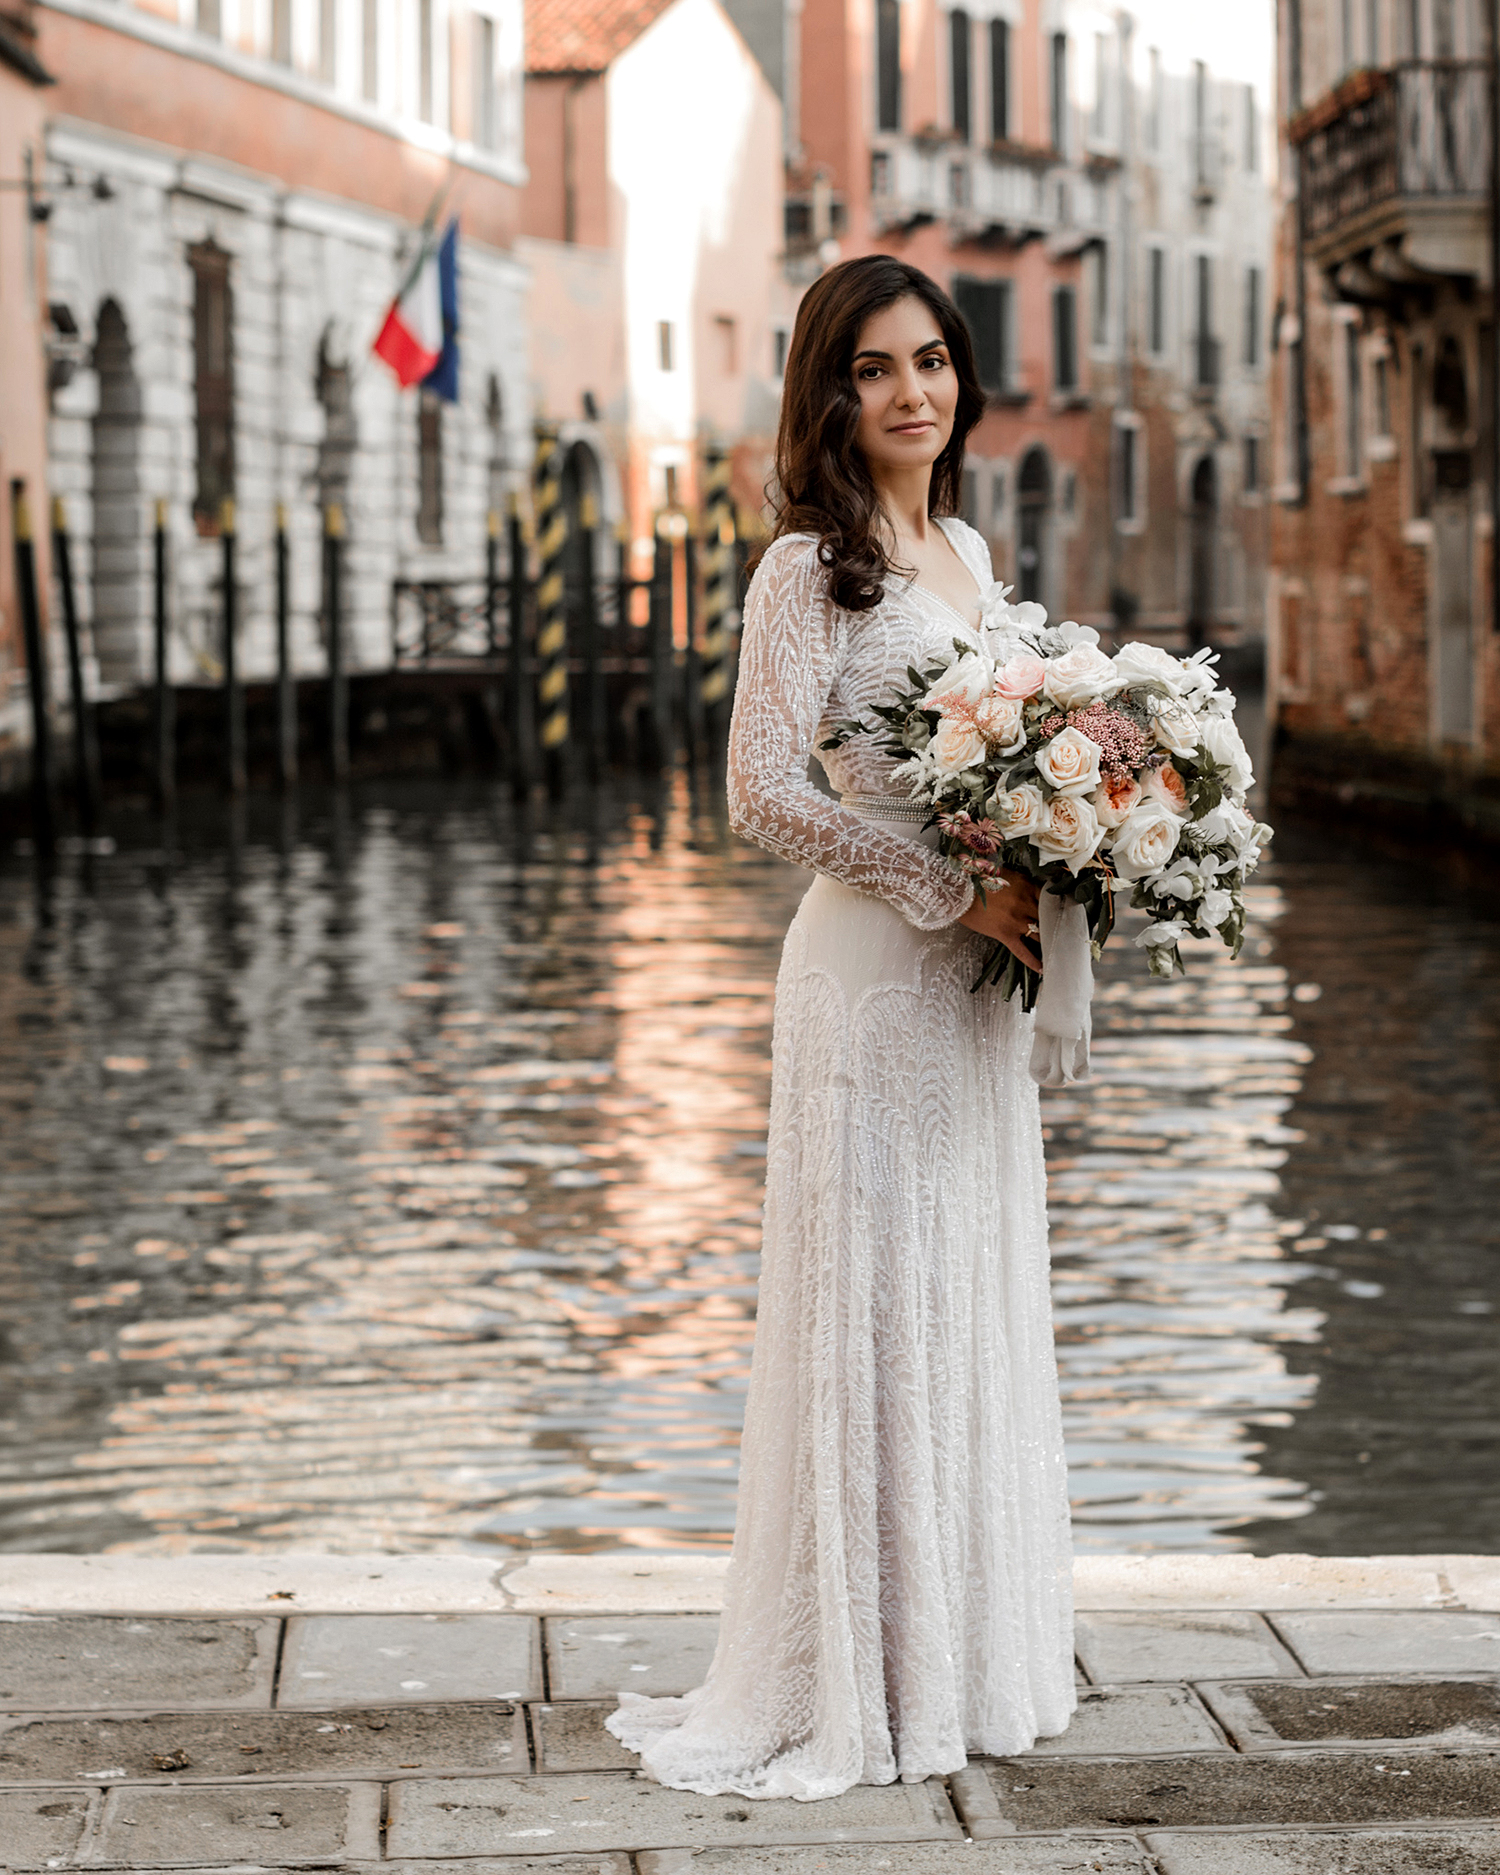 elle raymond venice wedding bridal bouquet